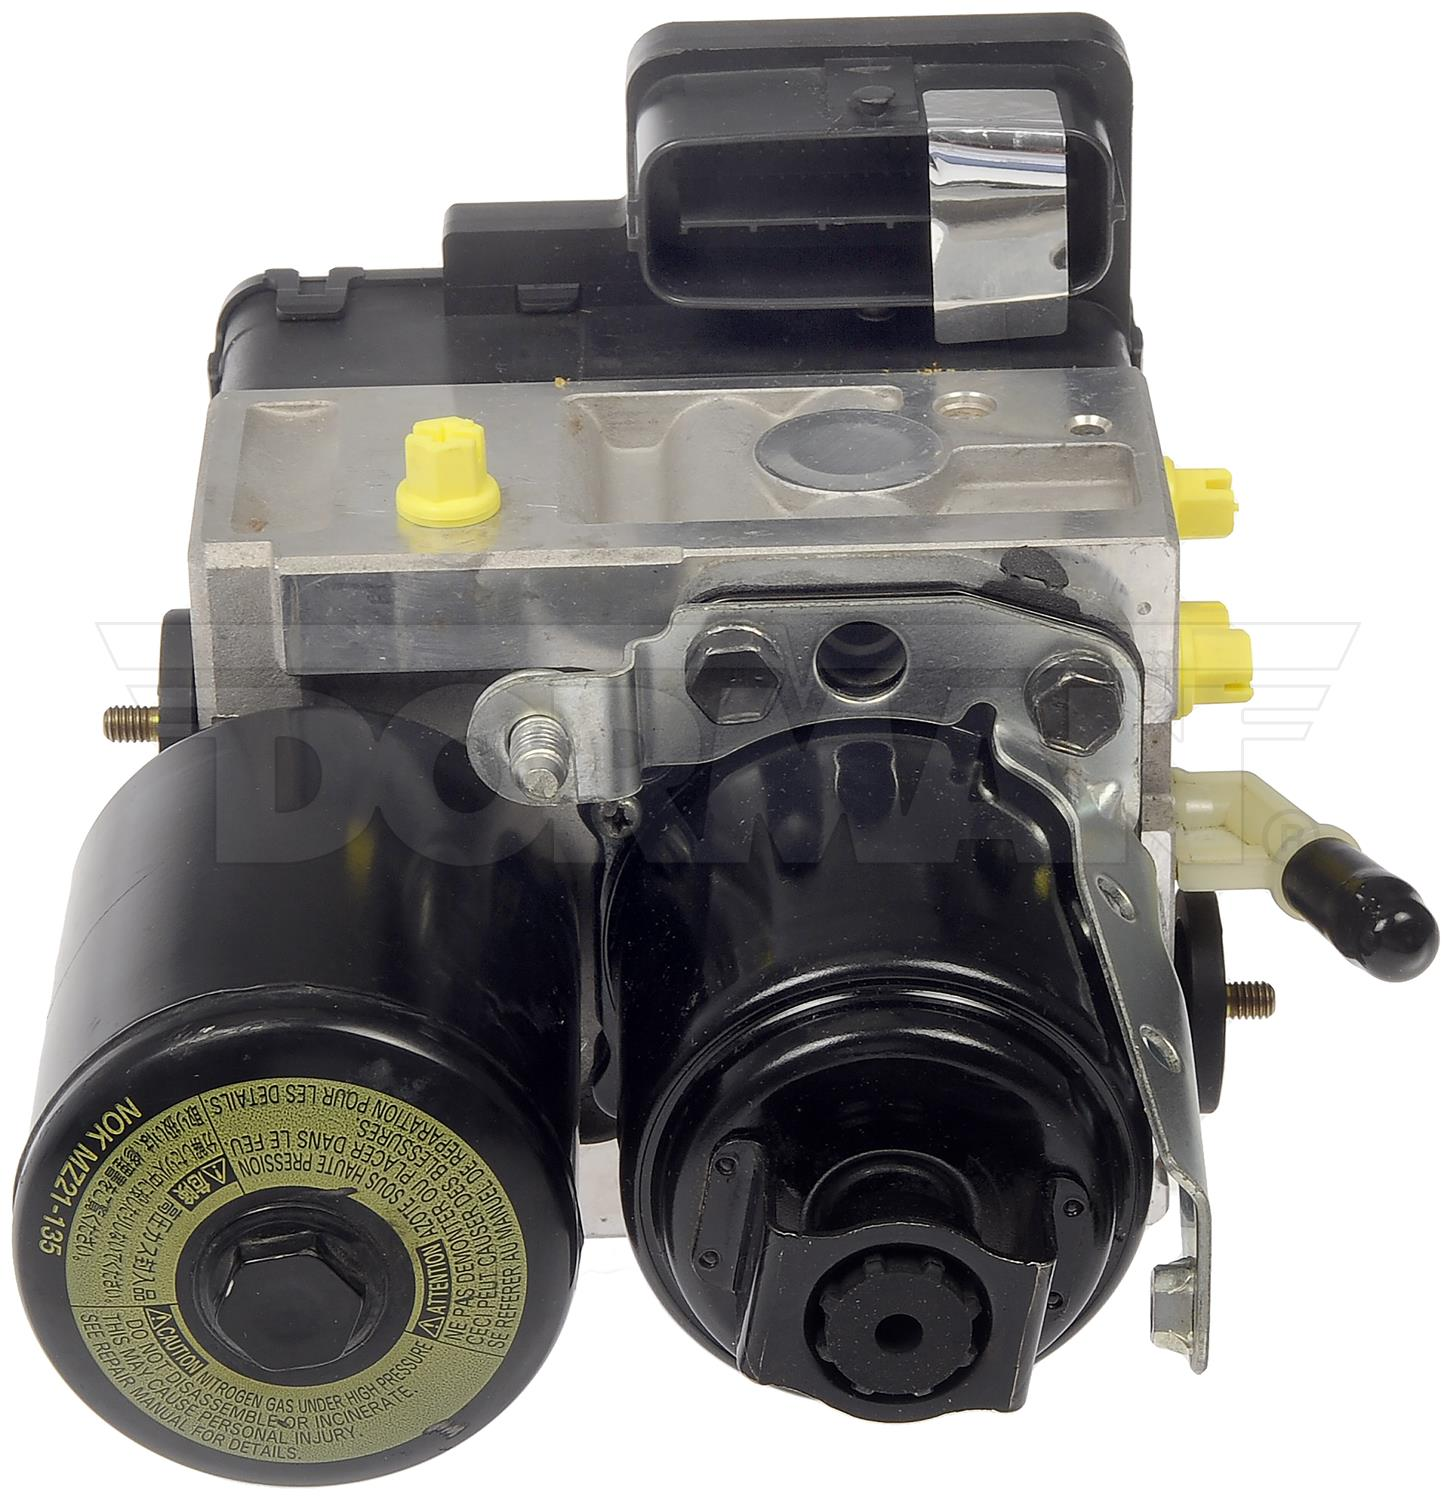 ABS Pump and Motor Assembly